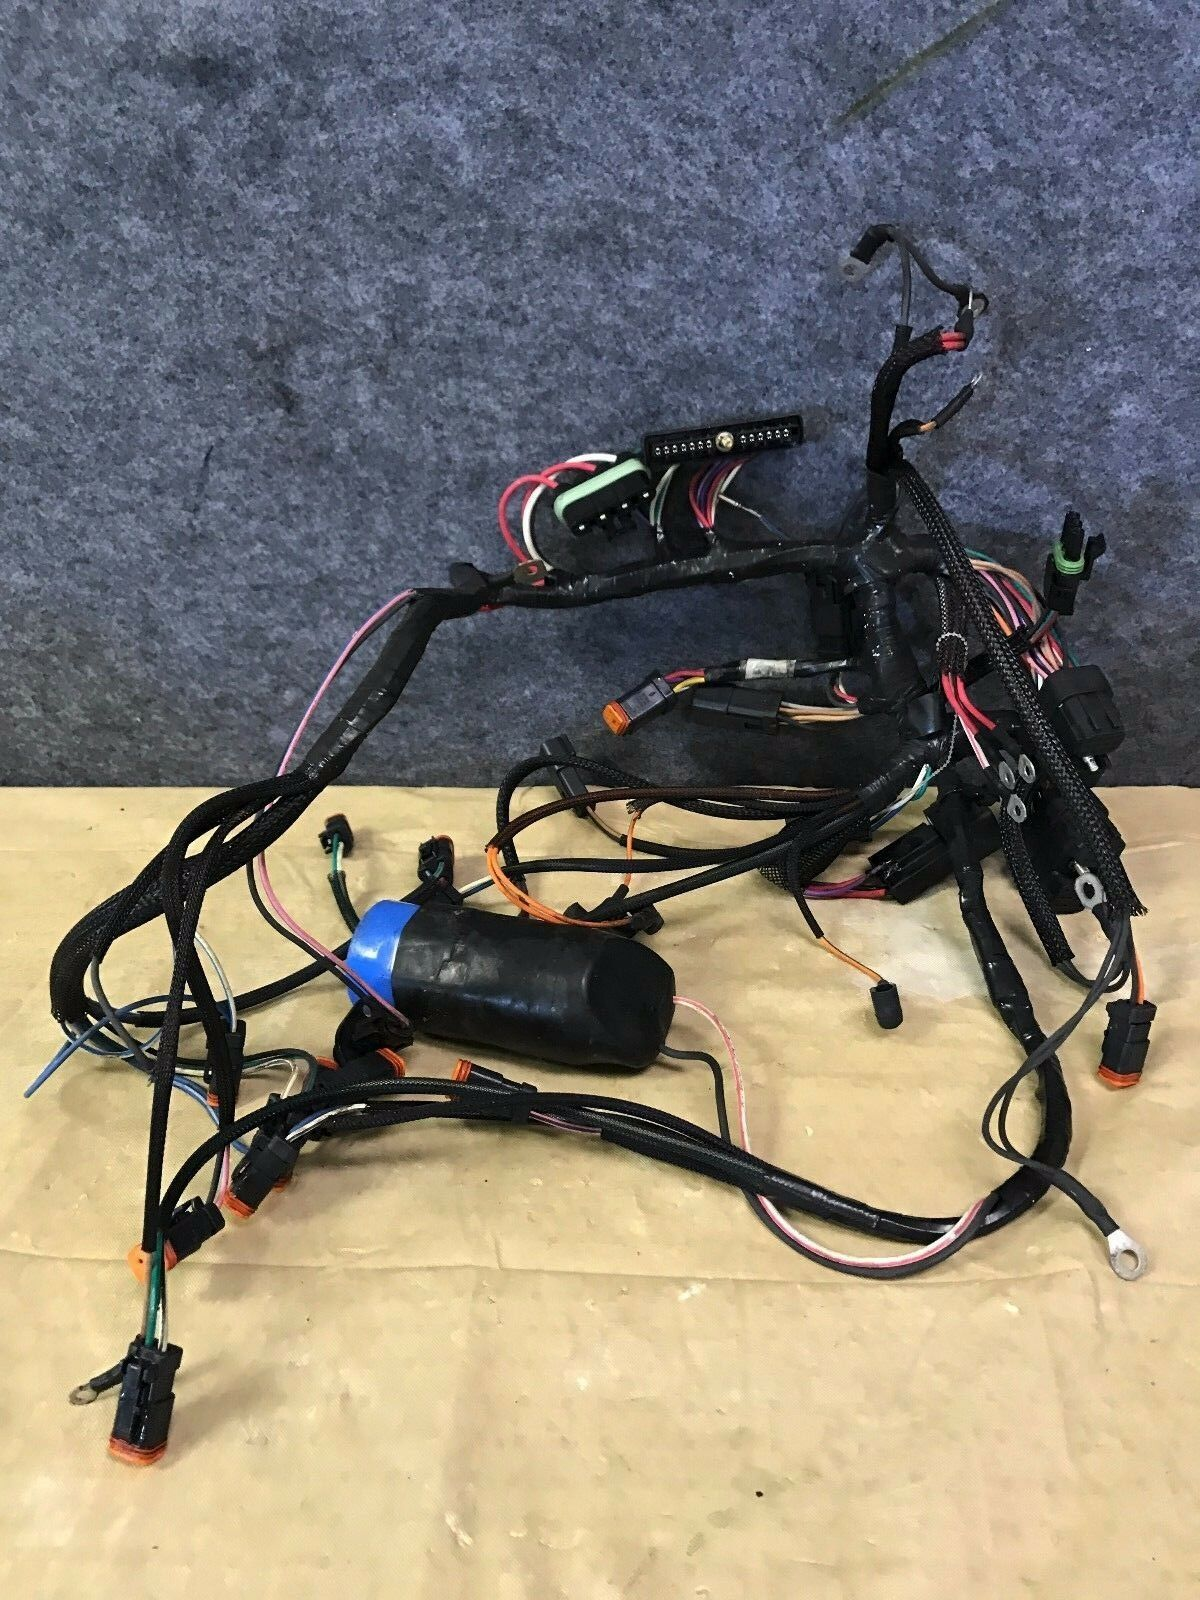 Clean Johnson Evinrude V4 Ficht 60 Degree 90 Hp Wiring Harness For Outboards 1 Of 1only Available